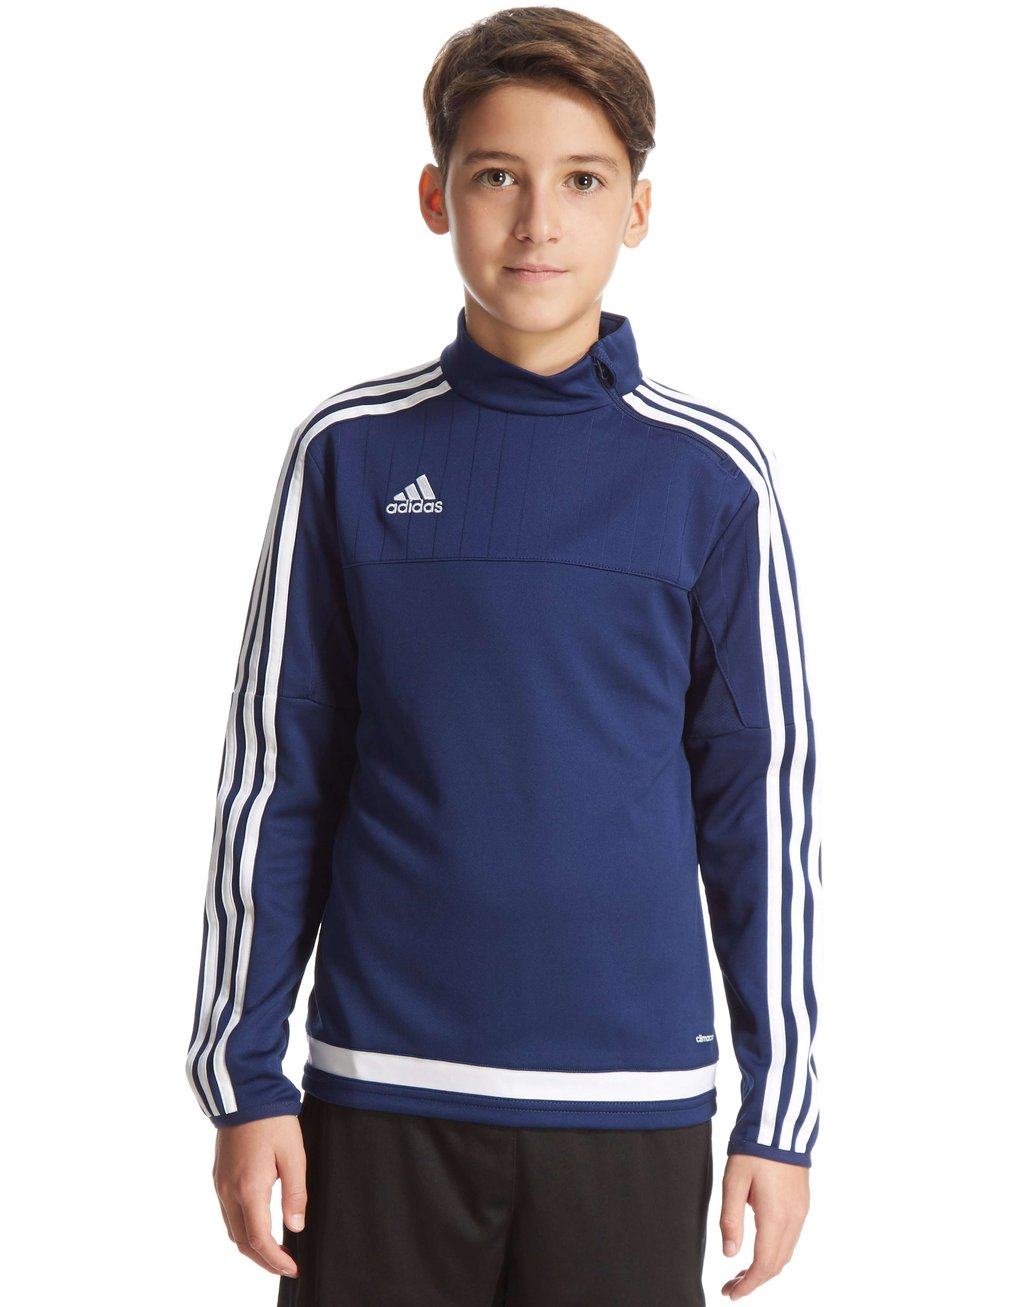 young teen boy in blue adidas sportswear sweat polo posing with his eyes wide open